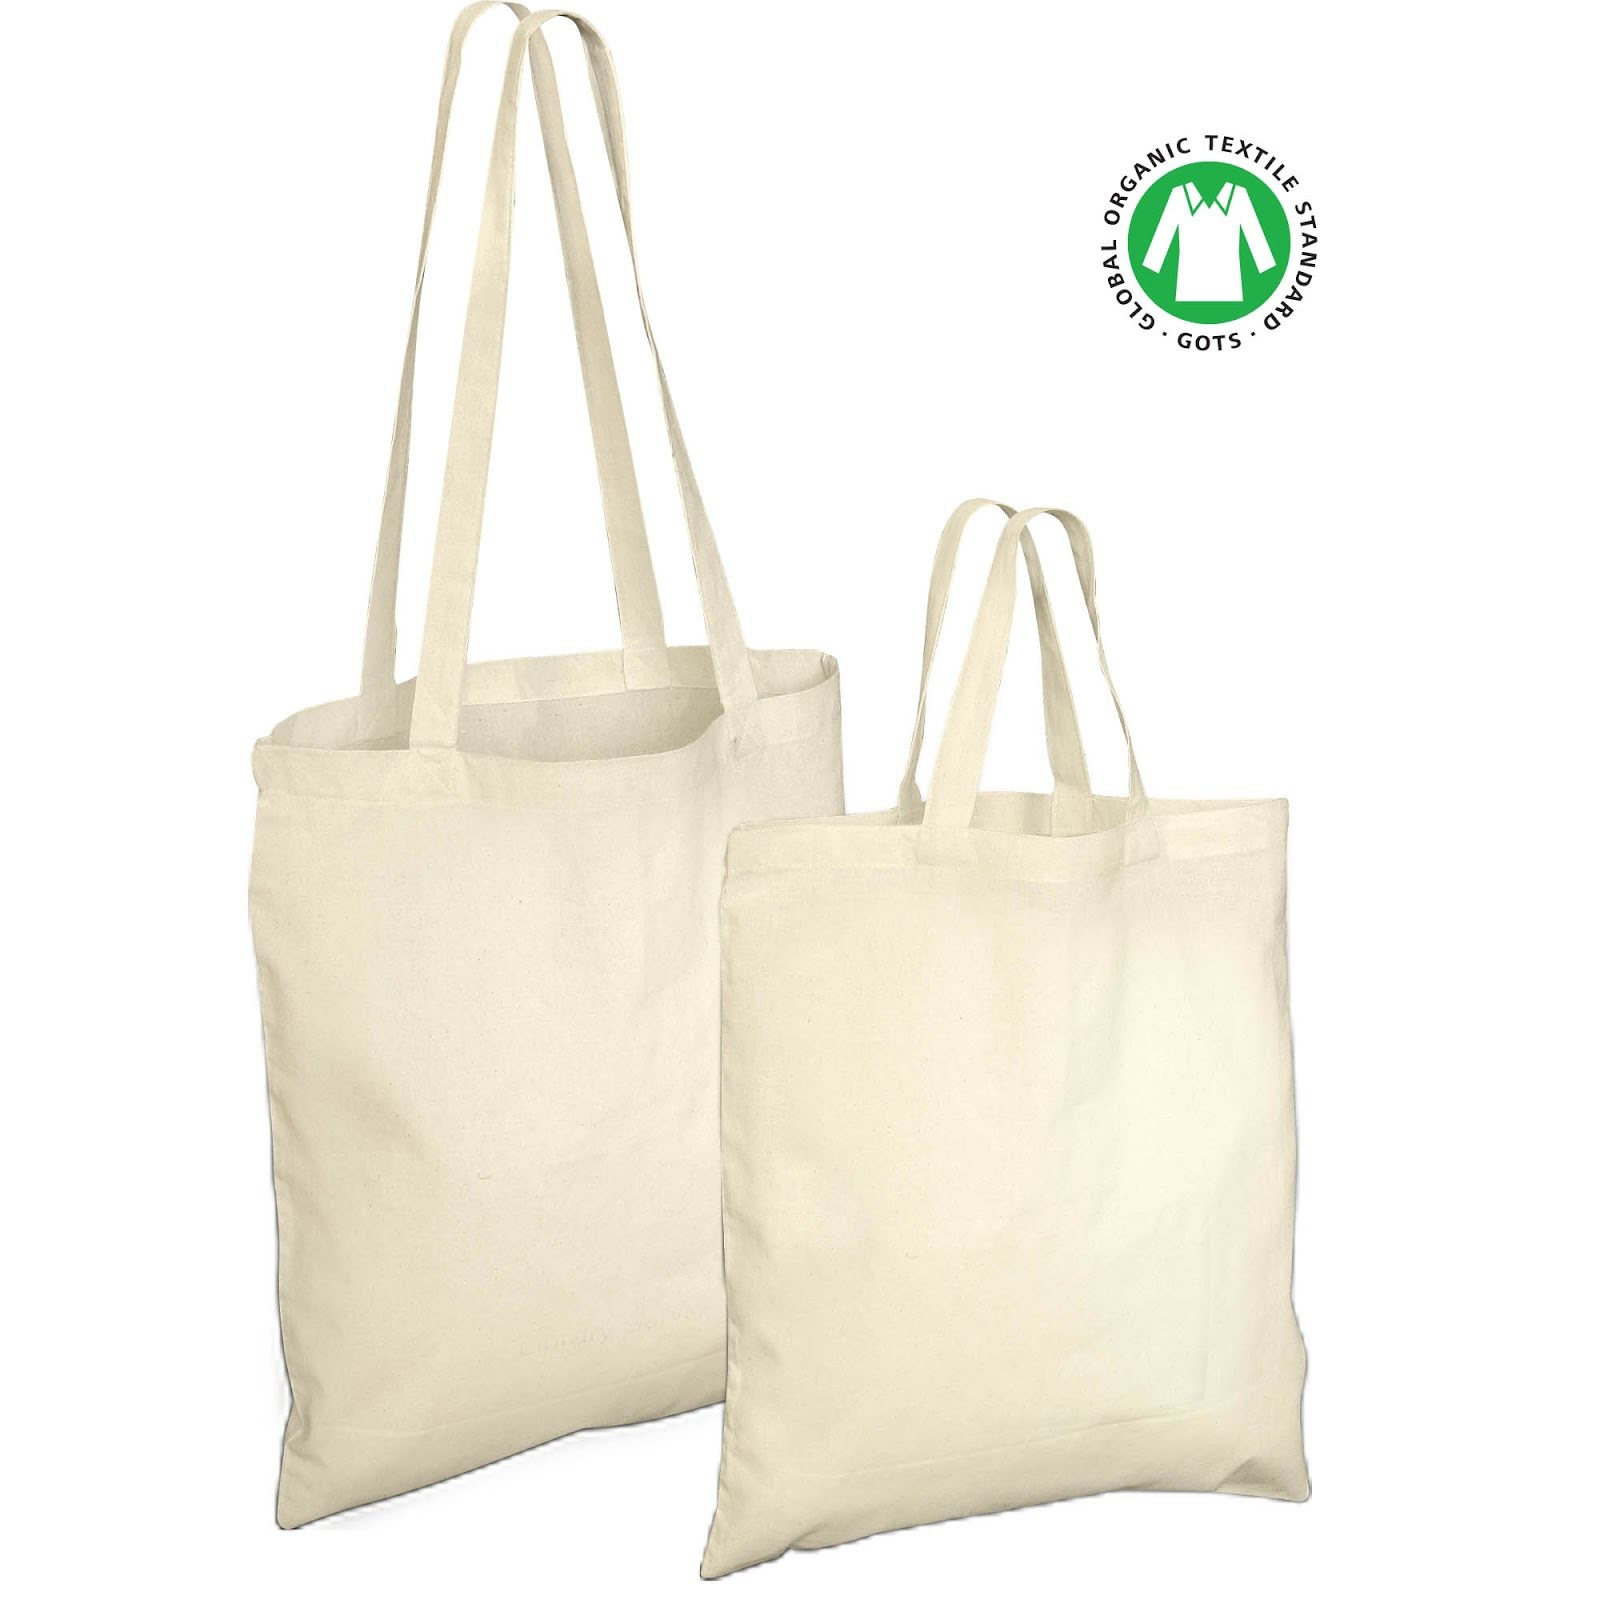 Printed Organic Cotton Bags